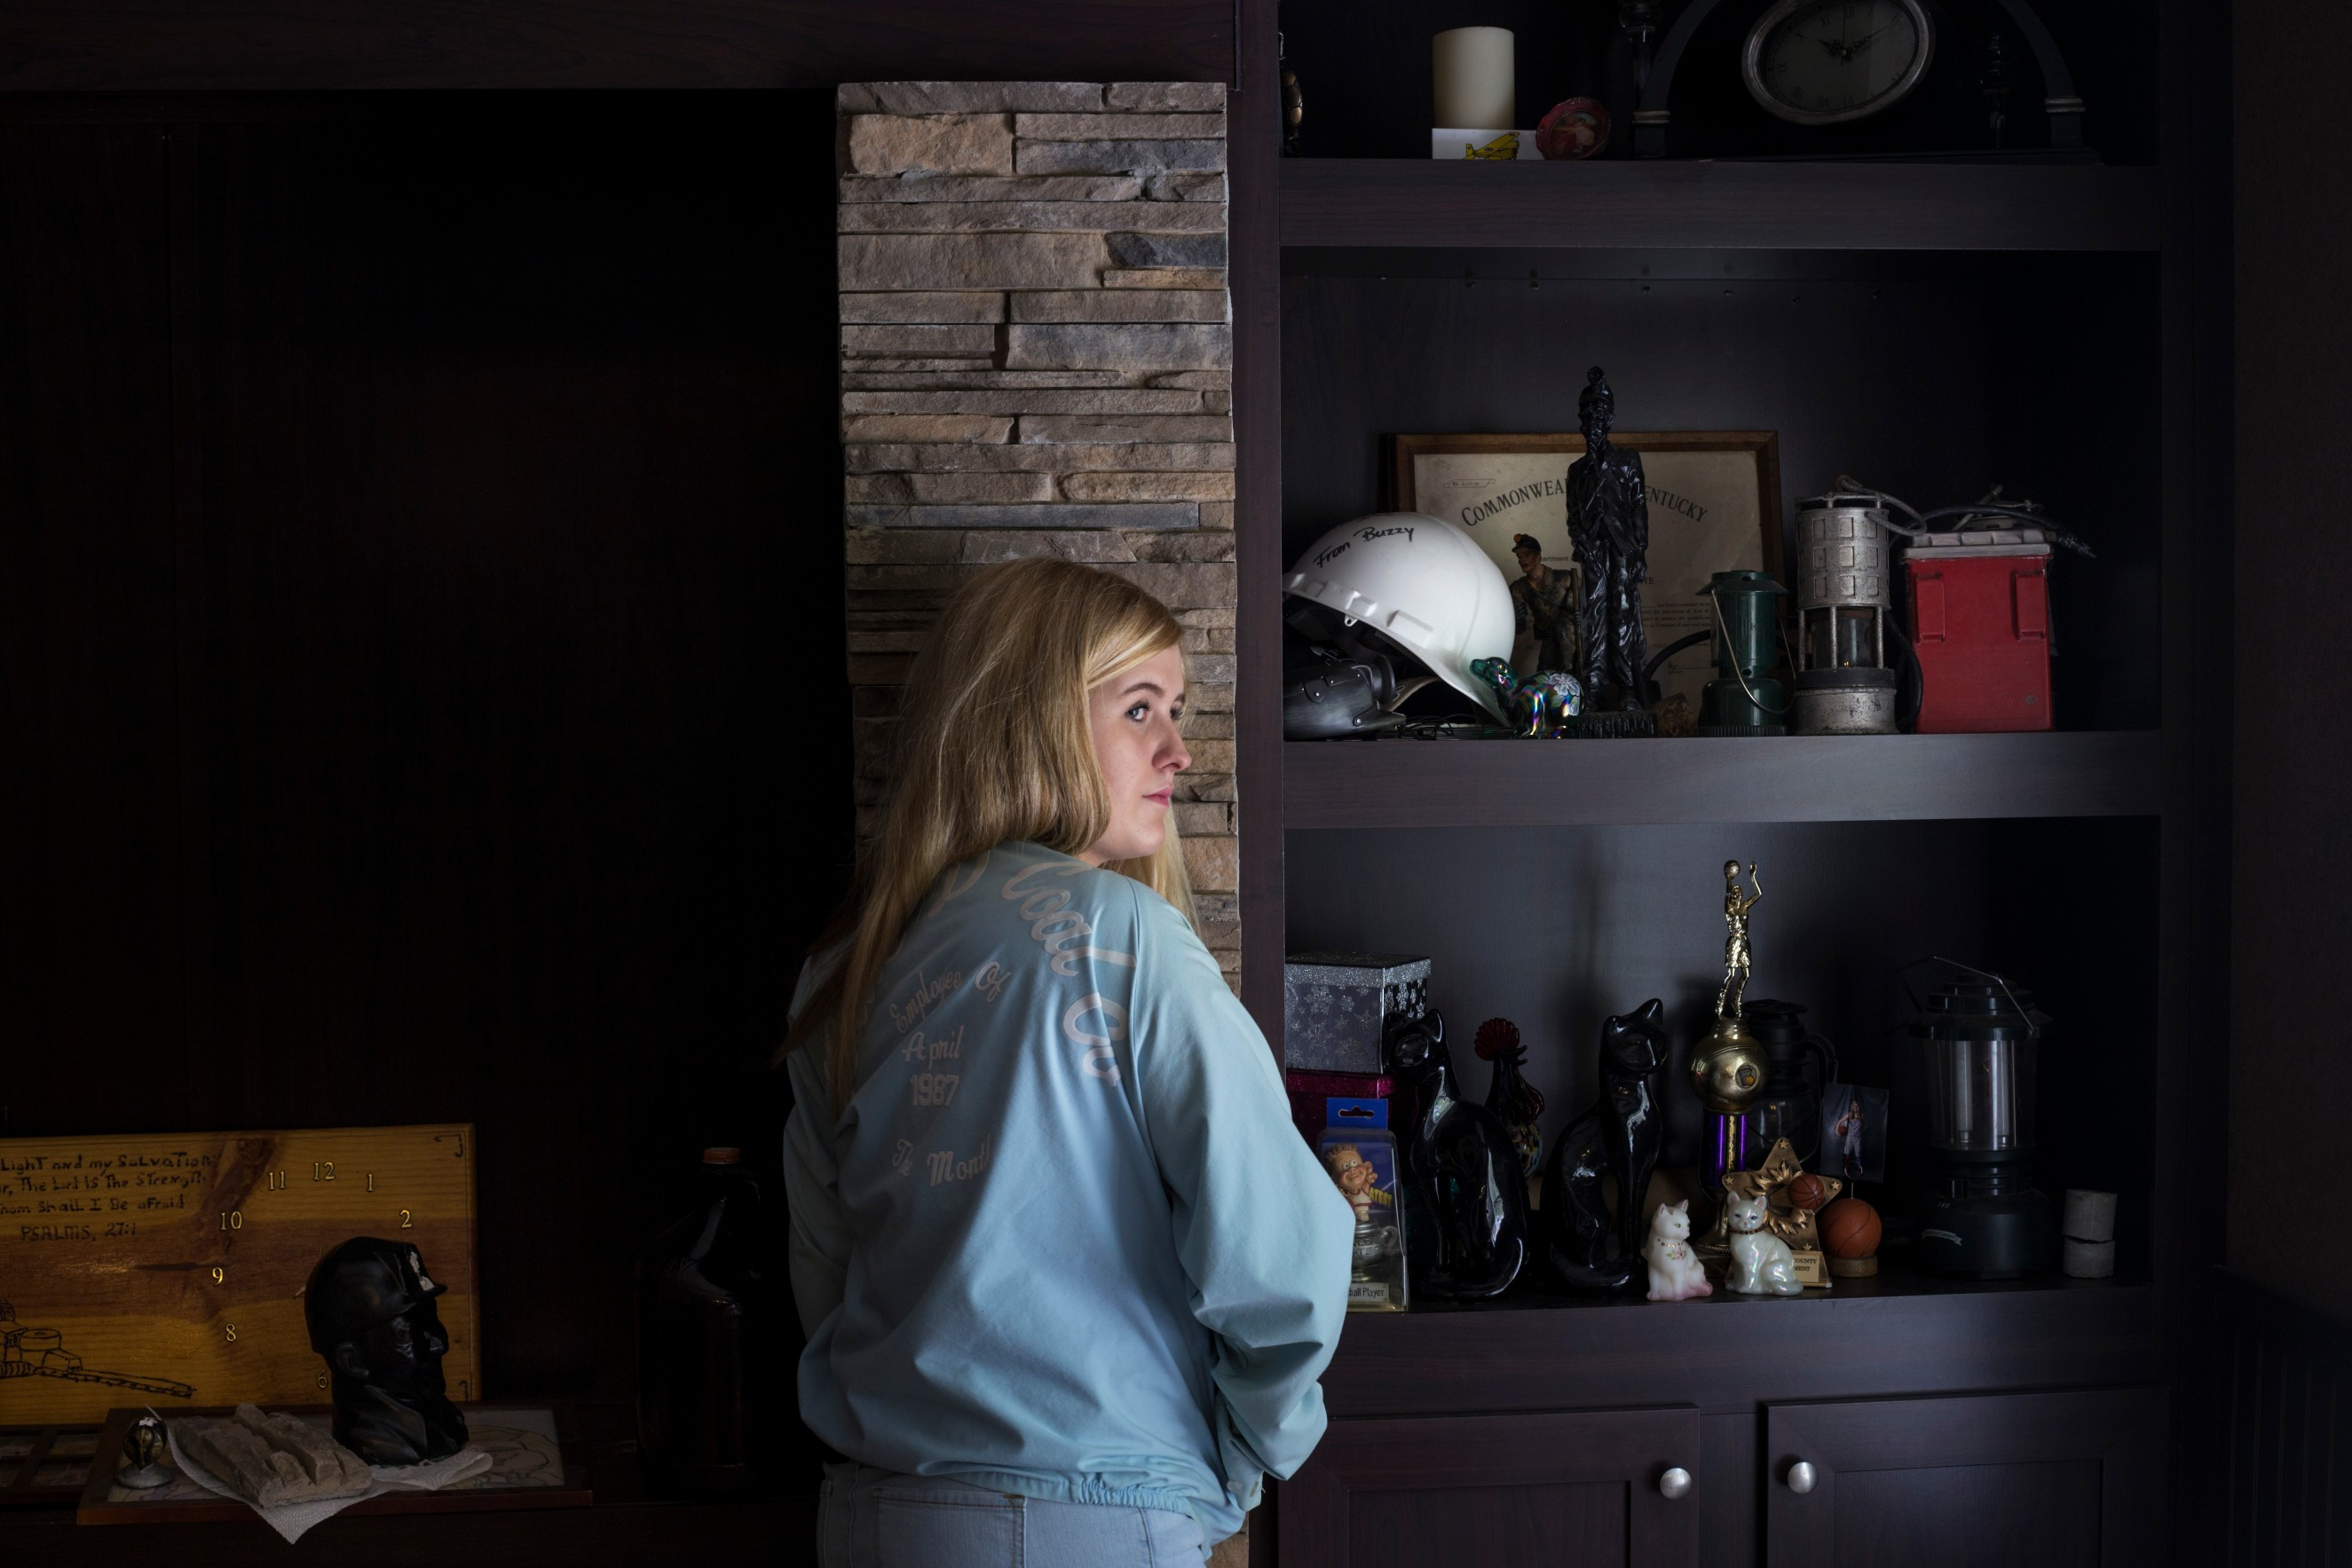 Lizzie Jones, 17, proudly wears her father's employee of the month jacket from his time working at the coal mines nearby a shelf of her family's relics of the coal industry at her home in Eastern Ky., on Sunday, September 24, 2017. Jones' father passed away from black lung in 2014. In January of 2017 her mother, who also worked in the coal mining industry, passed away. Jones said she has plans on moving into the home they once shared and has developed a complex relationship with the coal. (Photo by Brittany Greeson/GroundTruth)